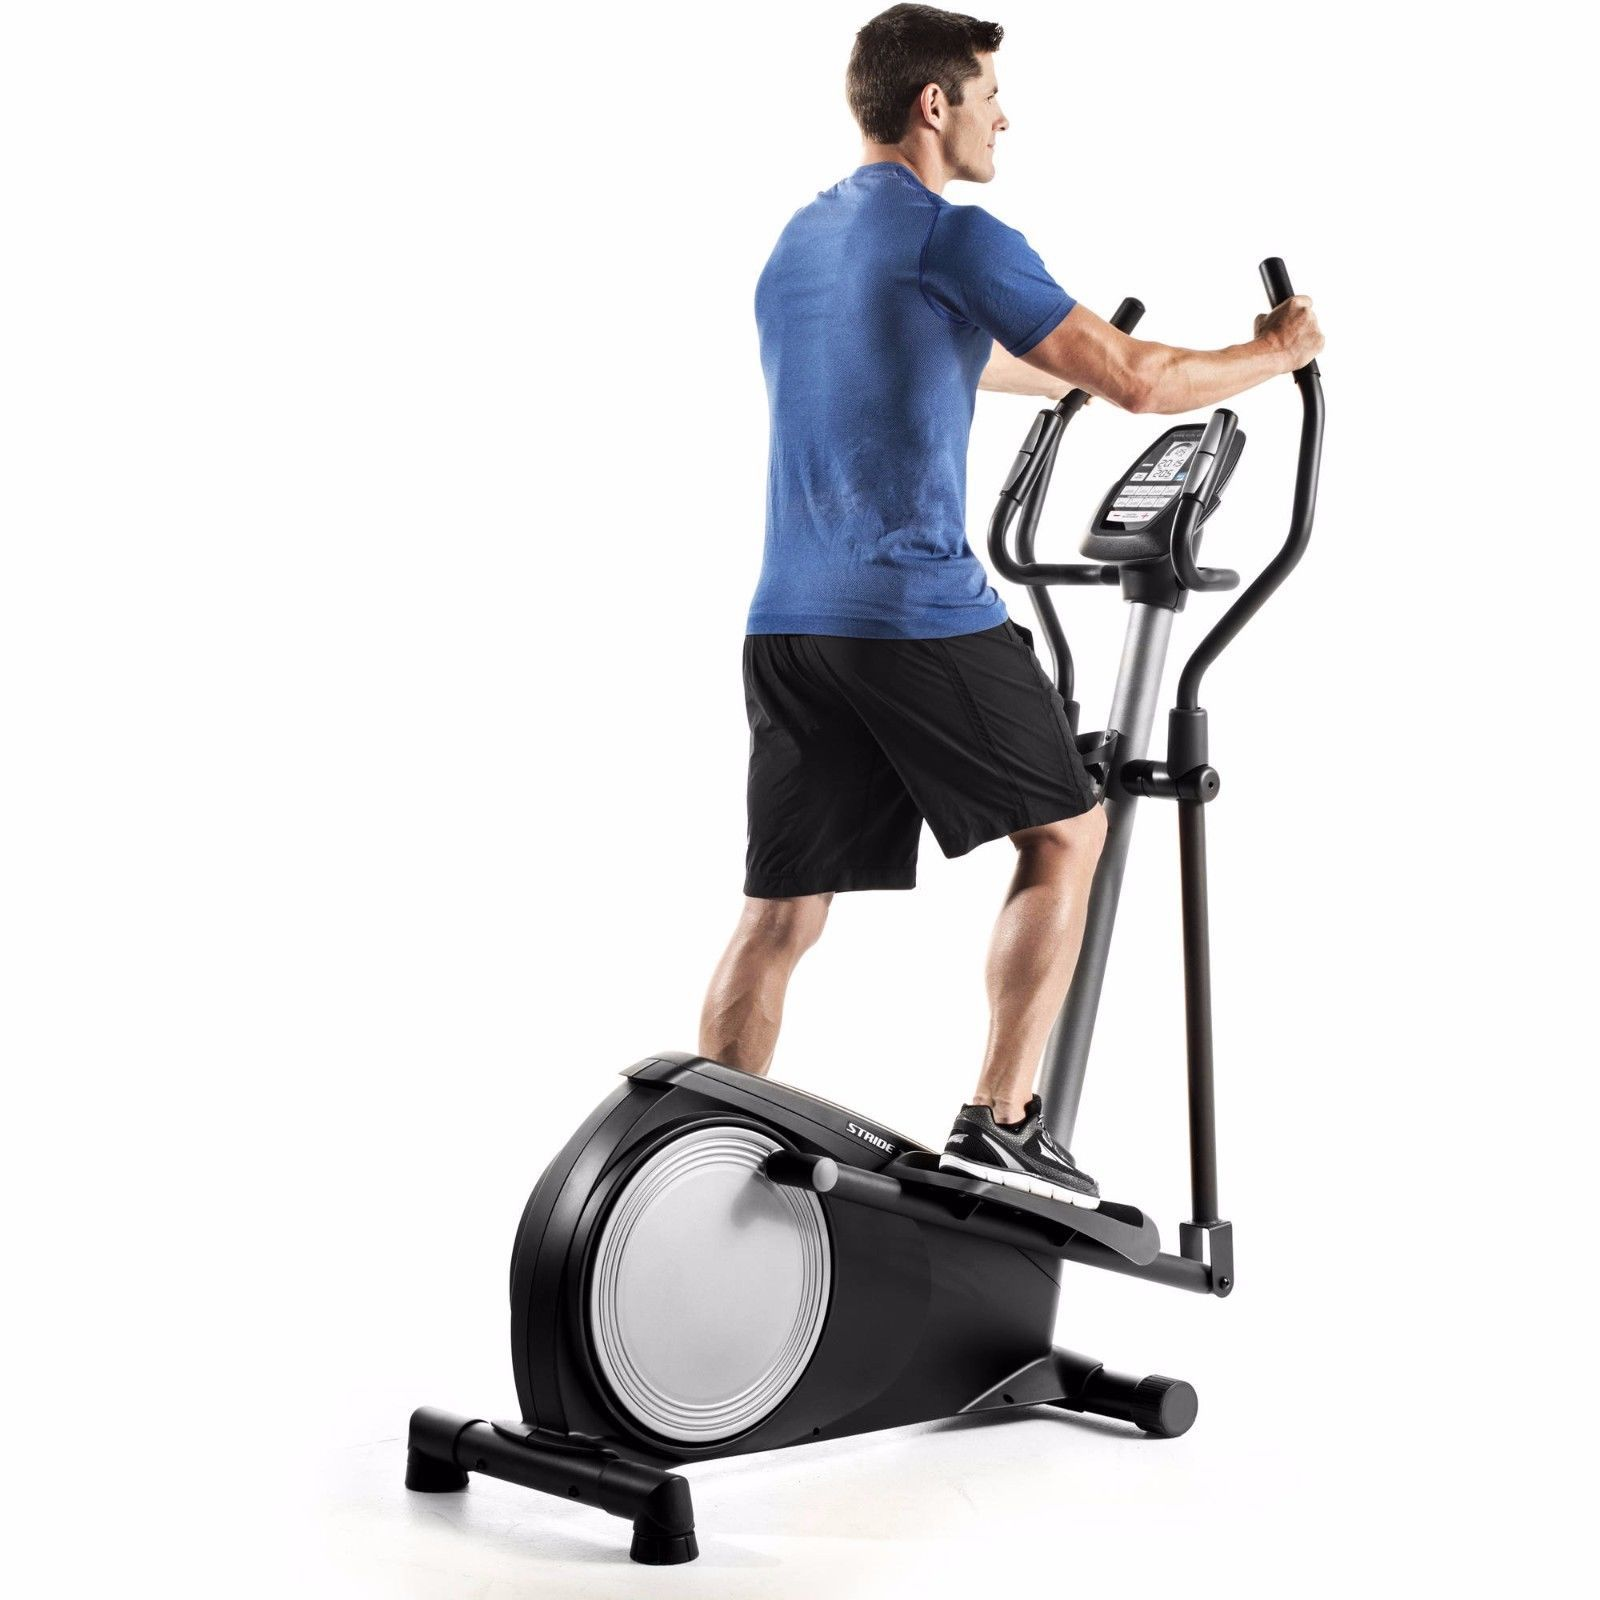 Ellipticals 72602: Tax Free Gold S Gym Stride Trainer 380 Compact Elliptical Machine -> BUY IT NOW ONLY: $272.02 on eBay!